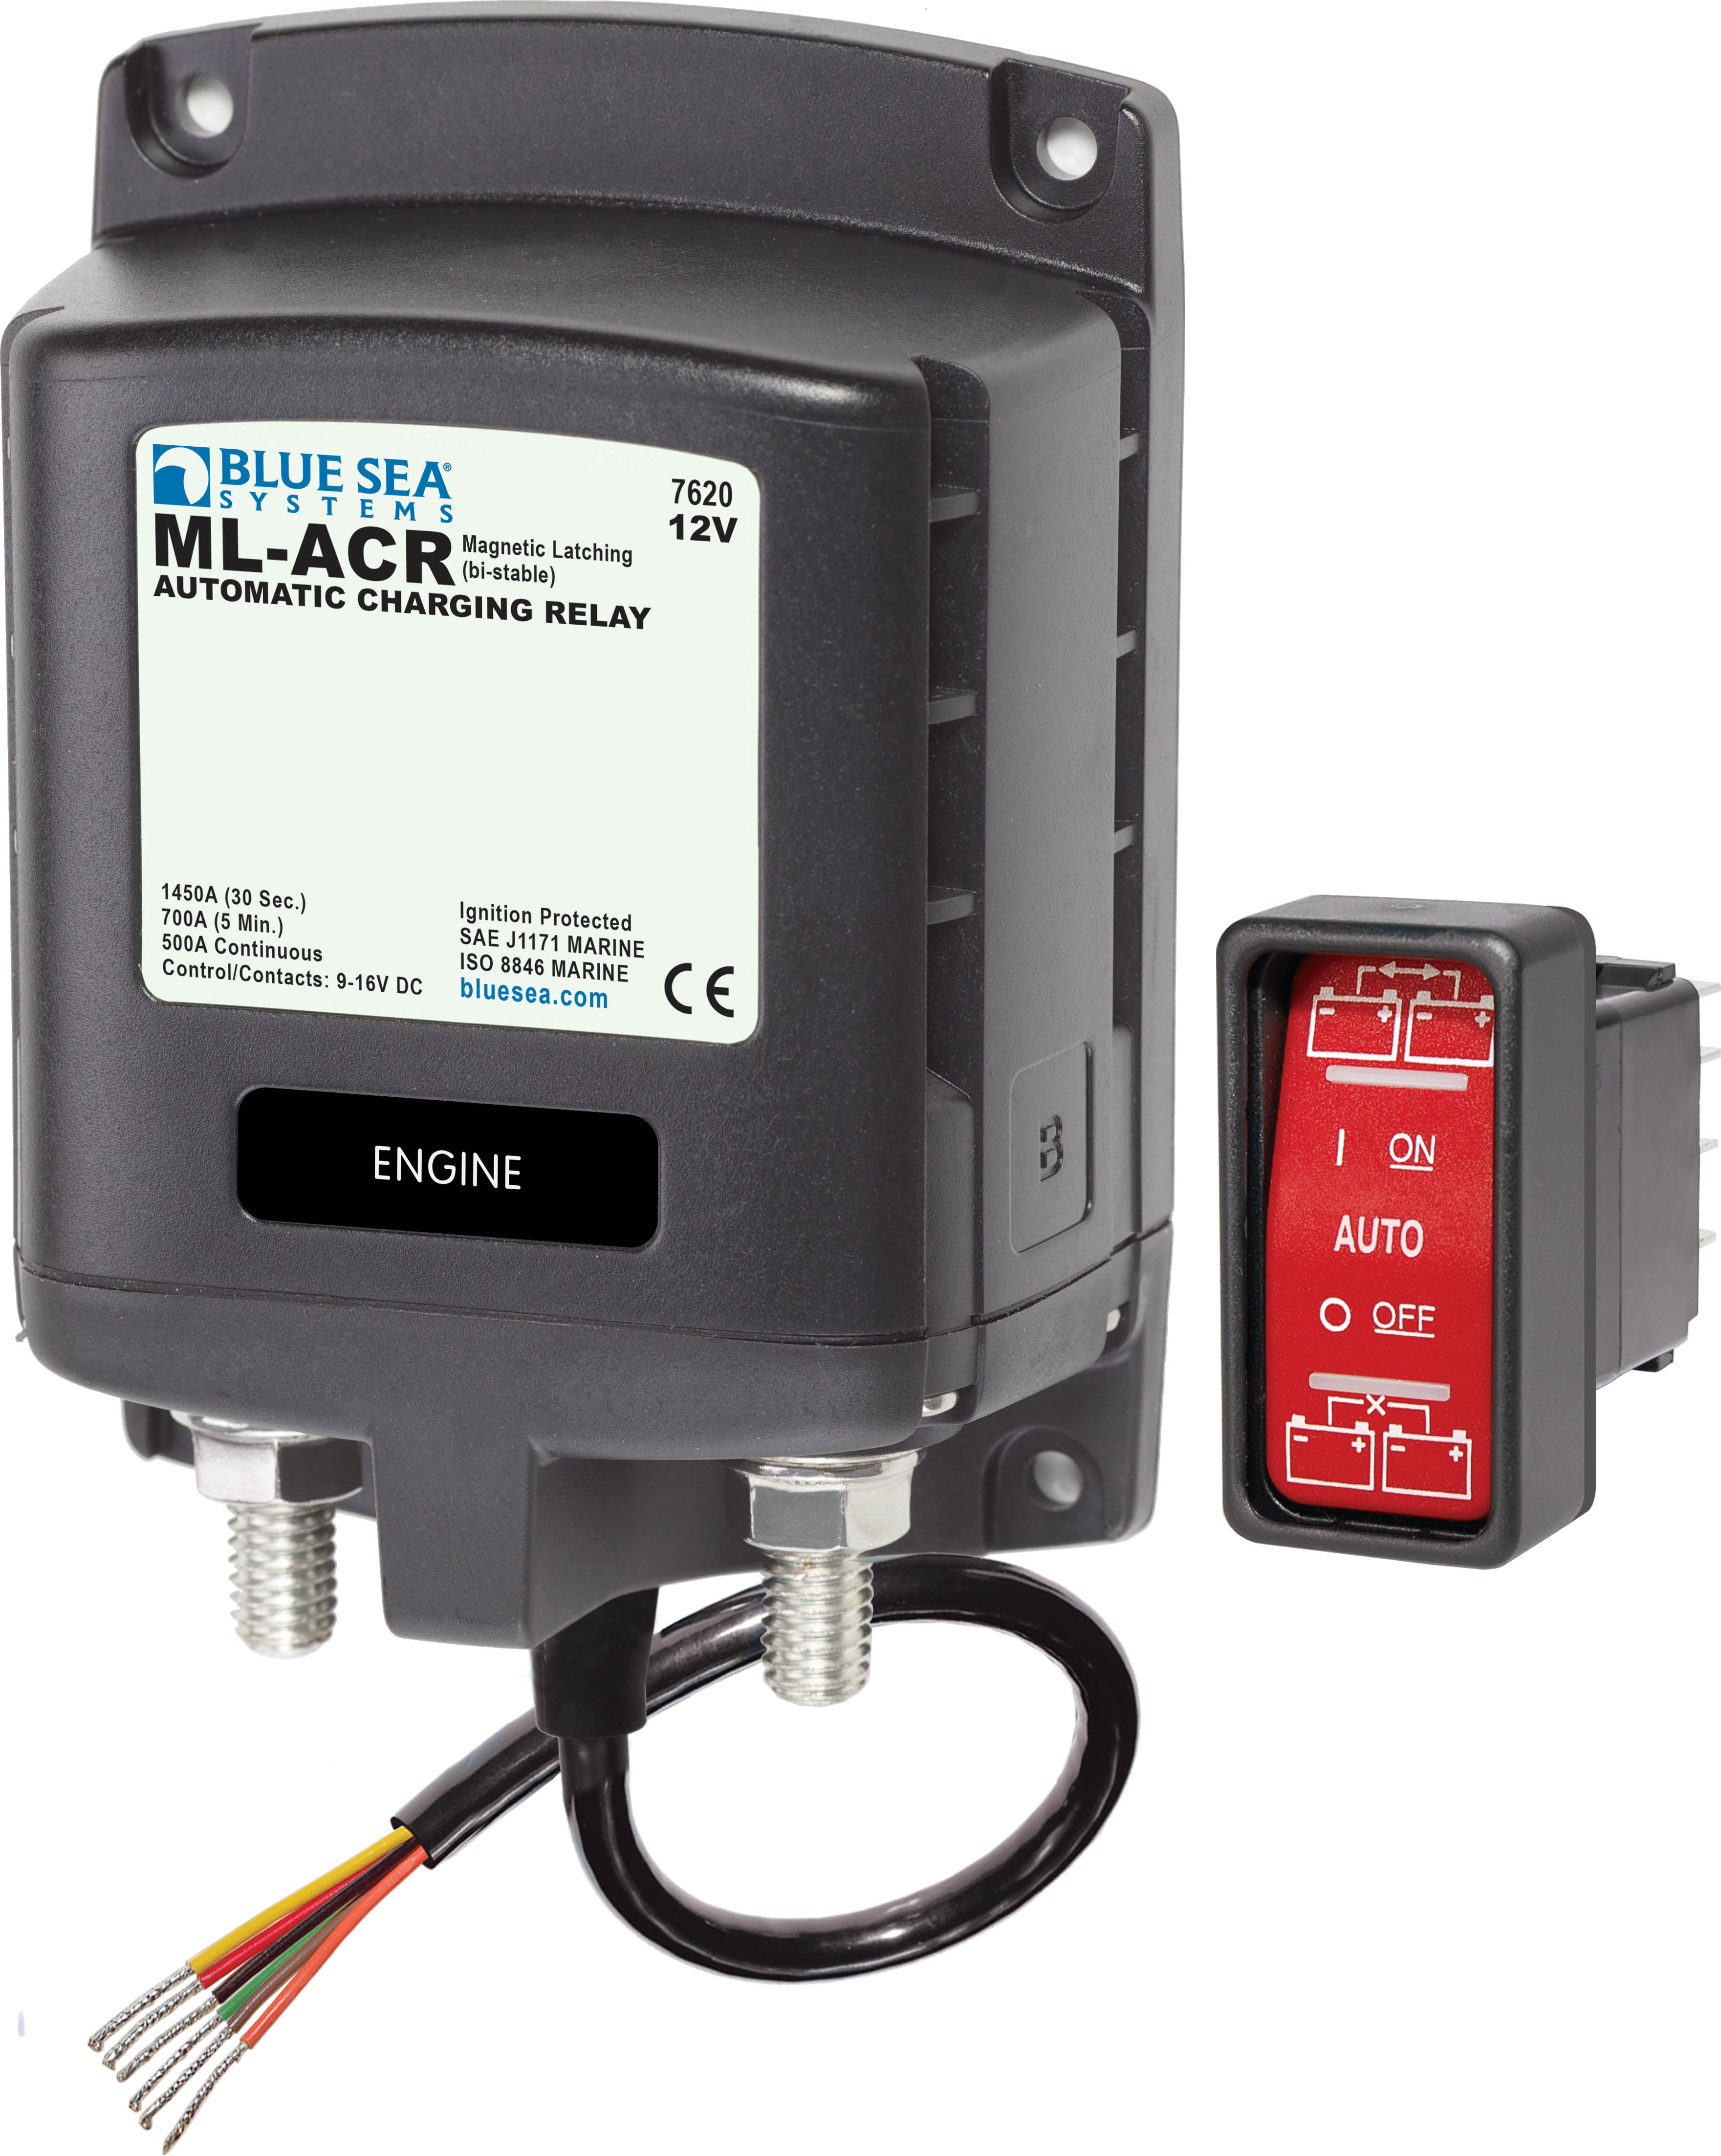 MLACR Automatic Charging Relay V DC A Blue Sea Systems - 12v low voltage protection relay